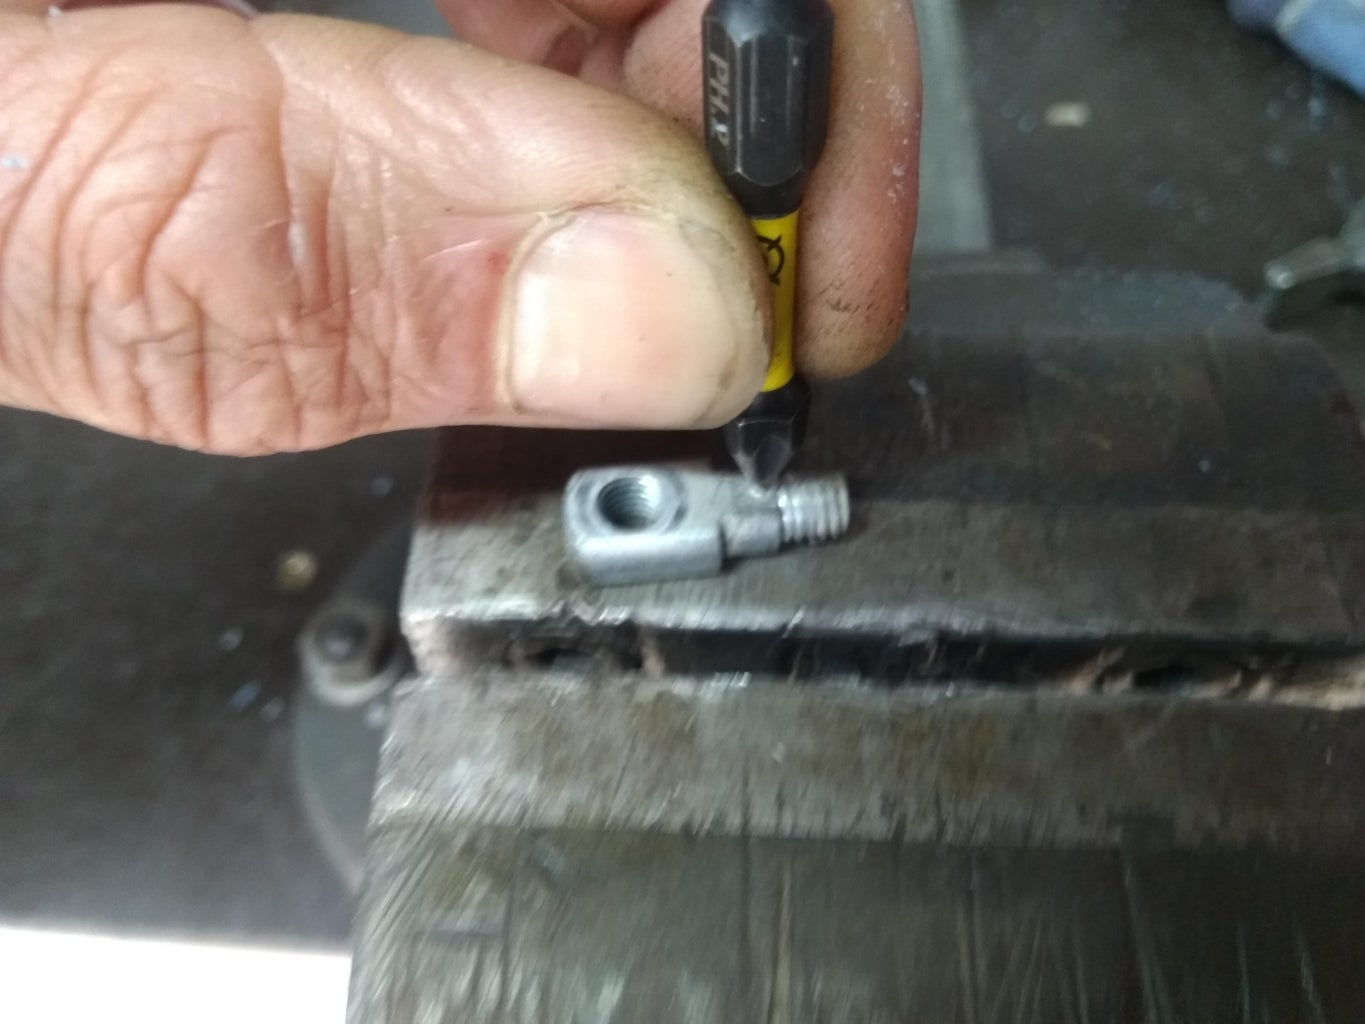 Make the Anchor Bolt Which Clamps the Cable